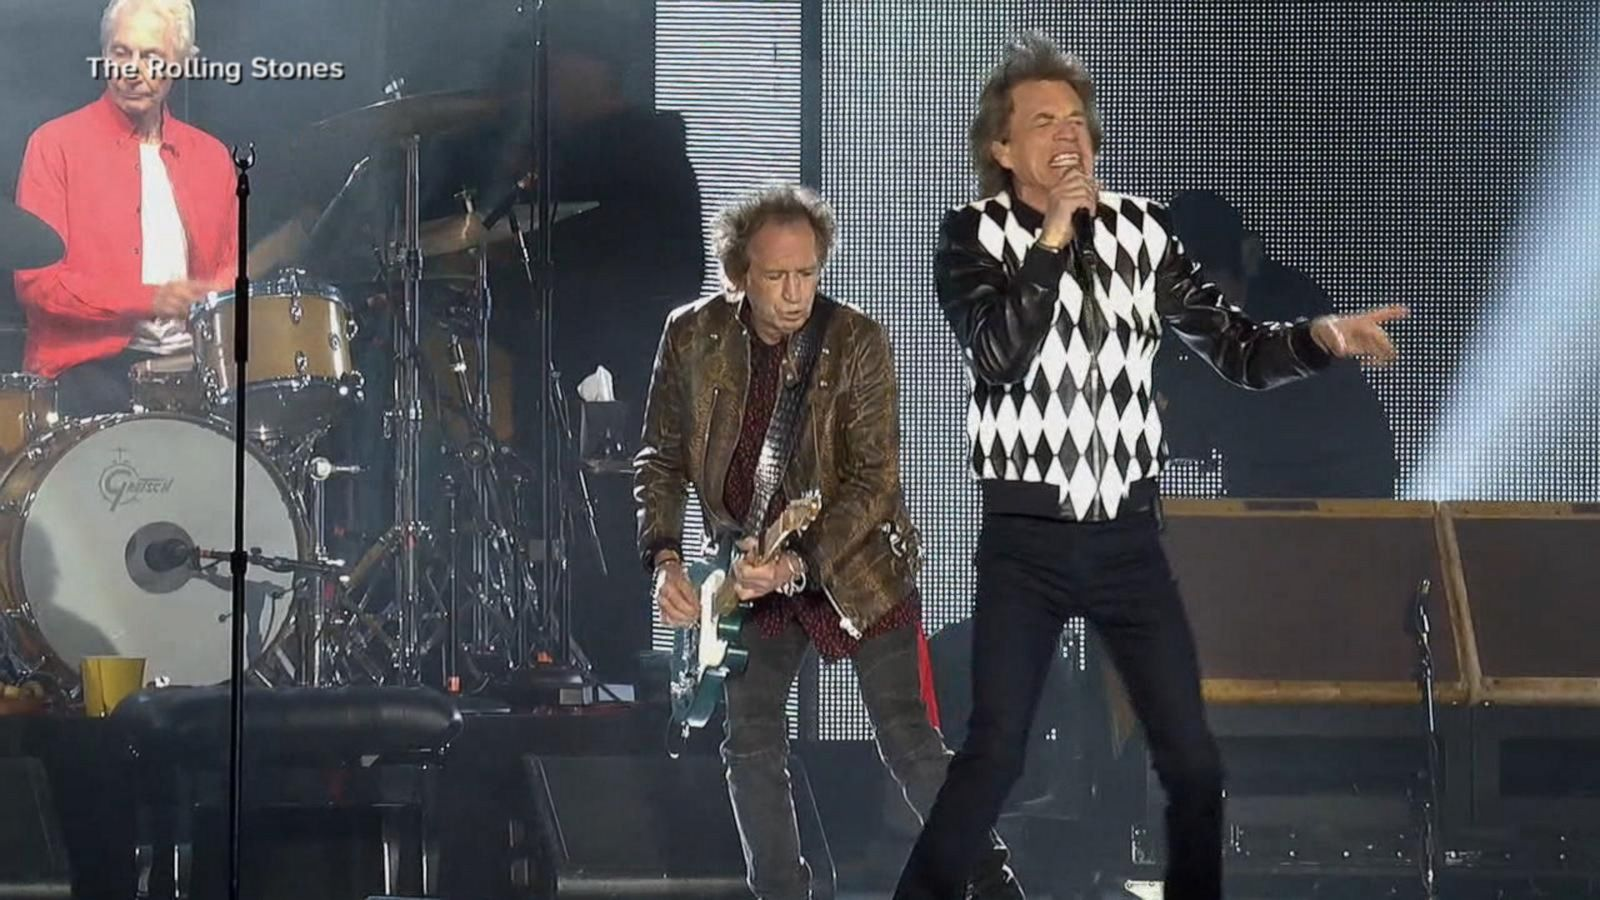 The Rolling Stones kick off tour in Chicago